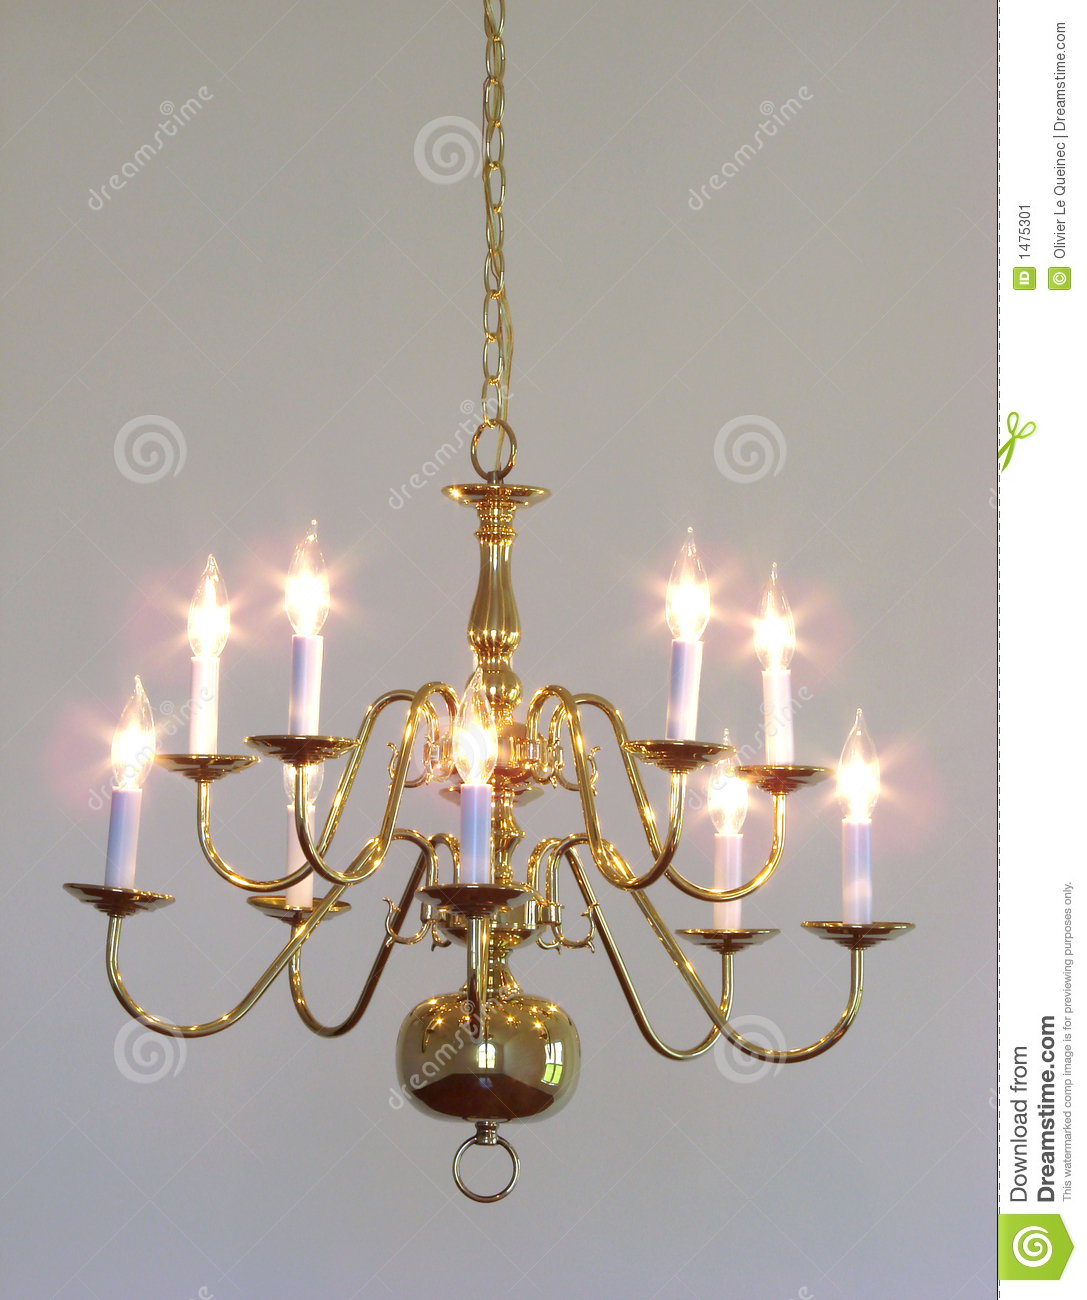 Royalty Free Stock Photo  Download House Interior Brass Dining Room Light  Chandelier. House Interior Brass Dining Room Light Chandelier Stock Image